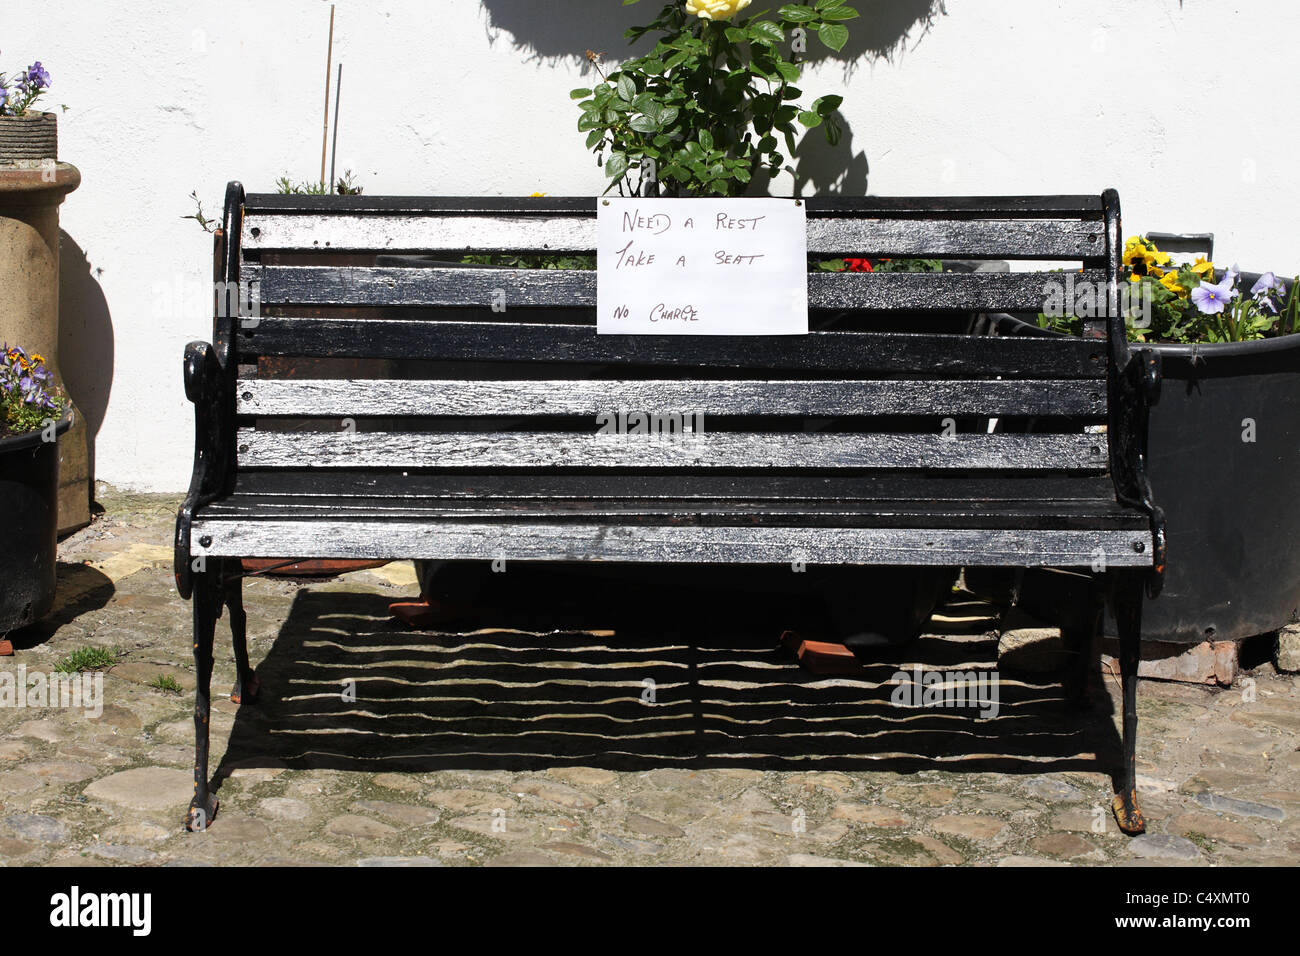 A bench to sit upon free of charge on a steep hill within Richmond, North Yorkshire, England, UK Stock Photo